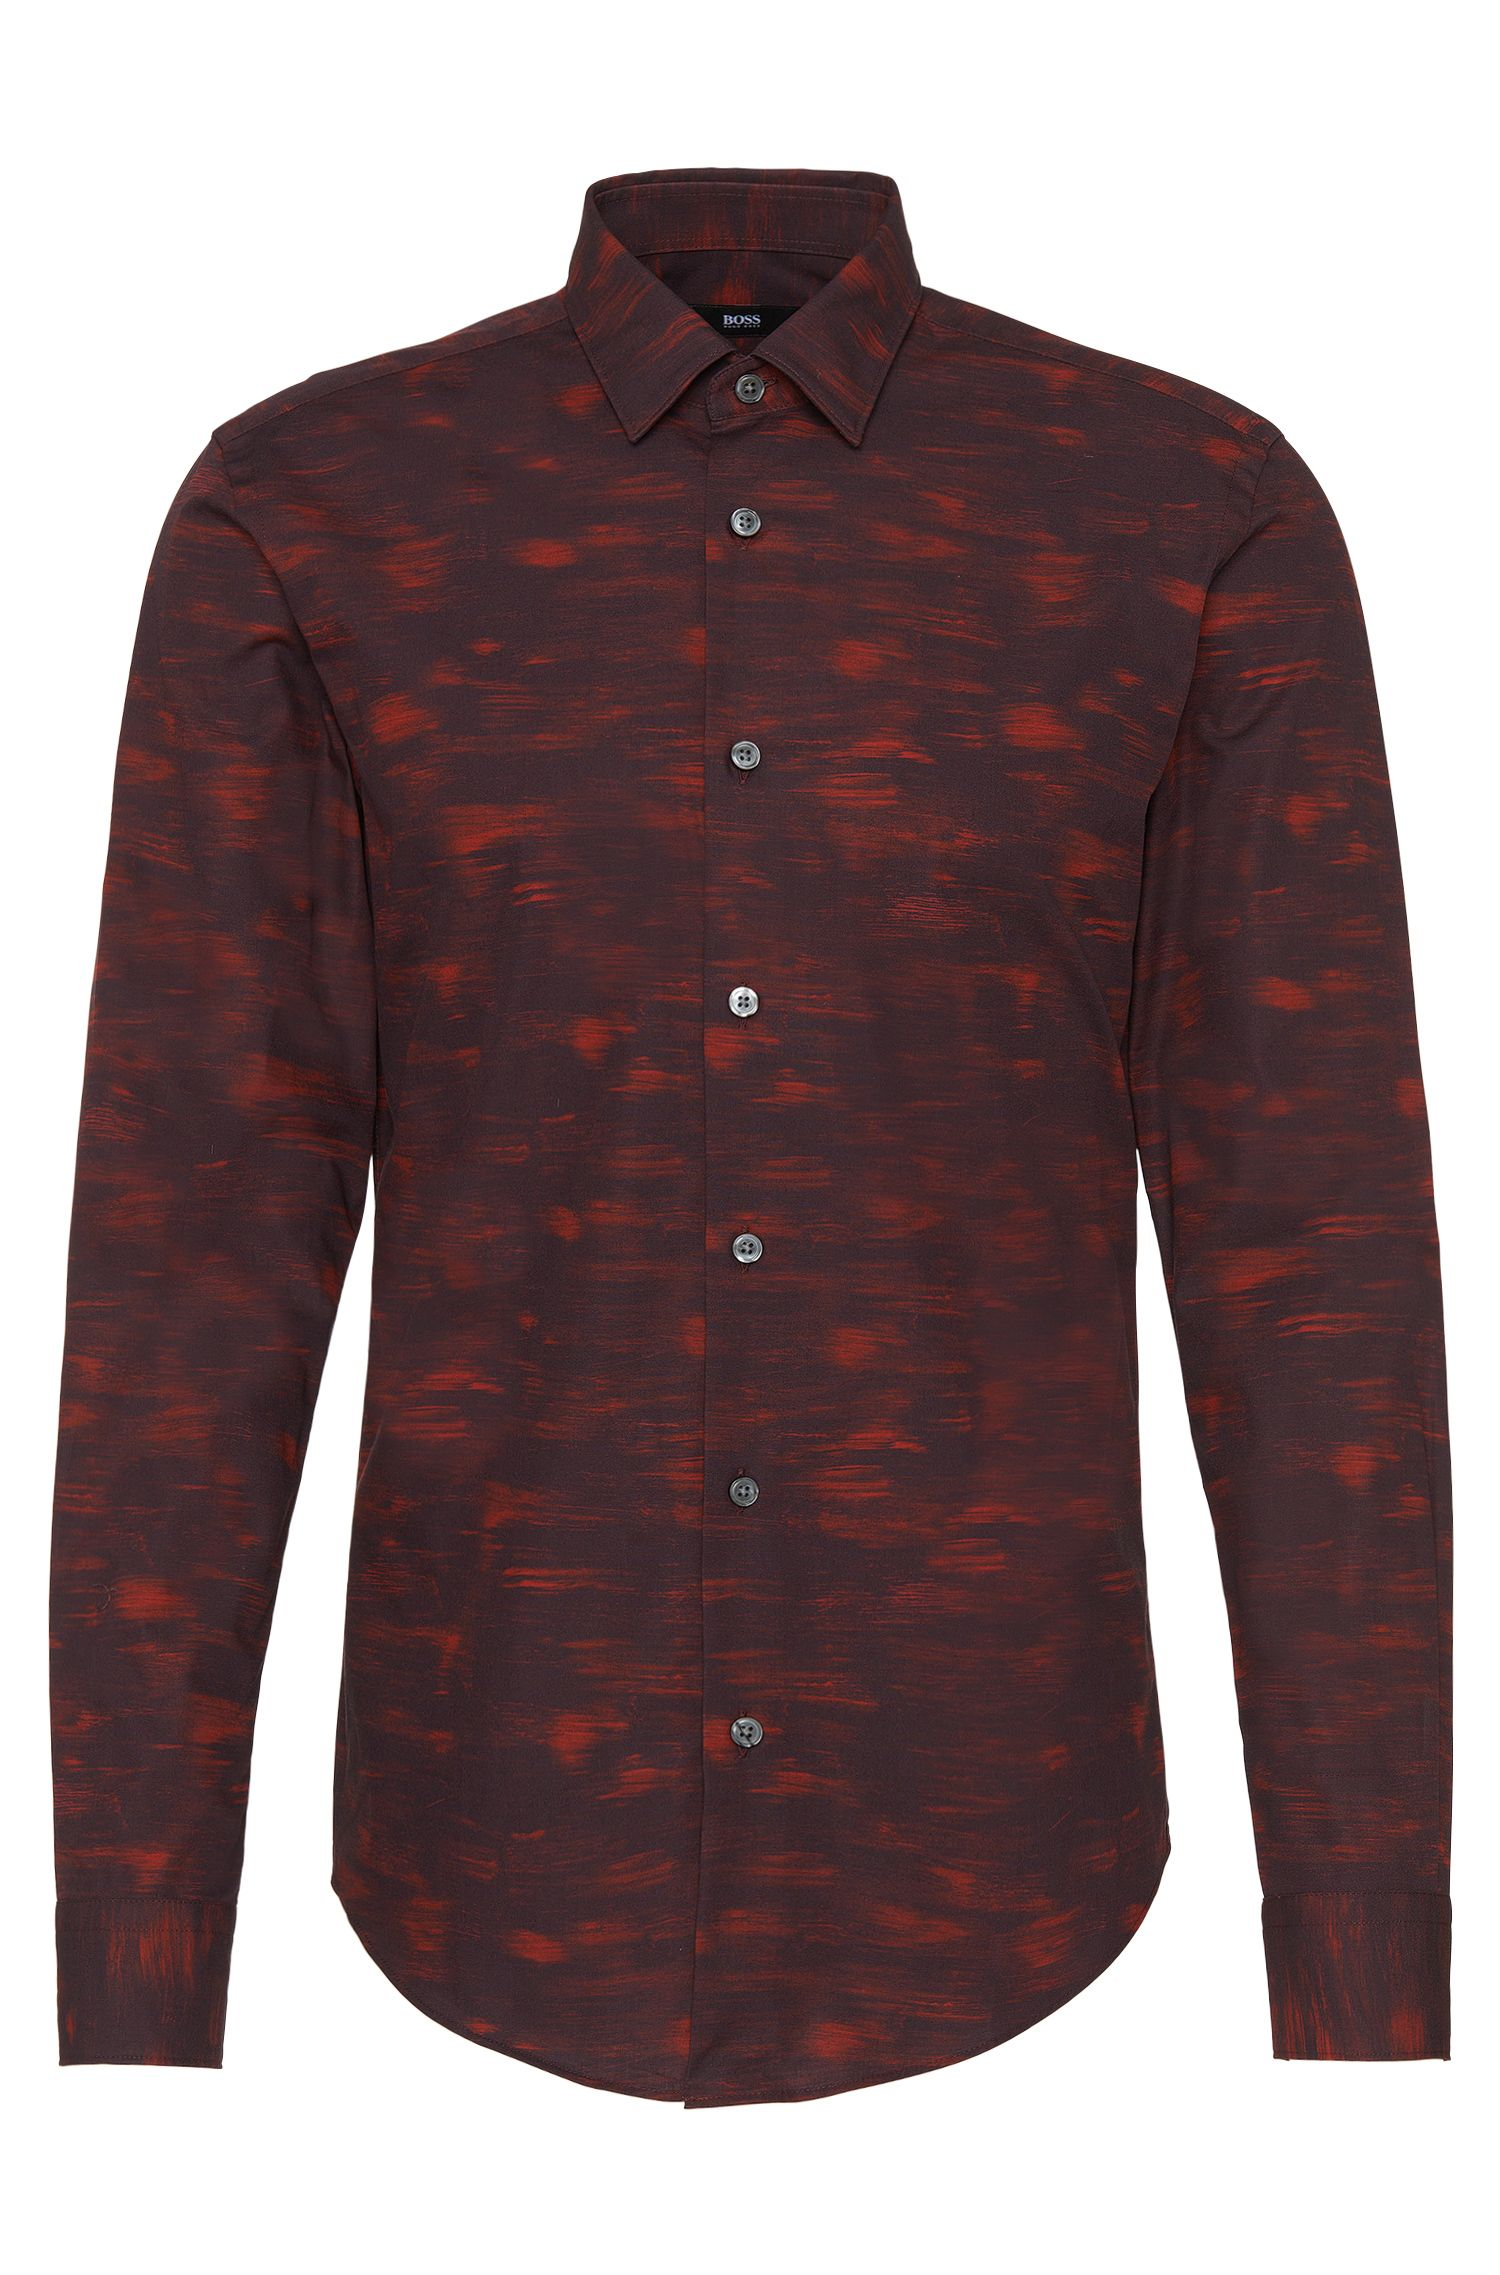 'Ronni' | Slim Fit, Italian Cotton Patterned Button Down Shirt